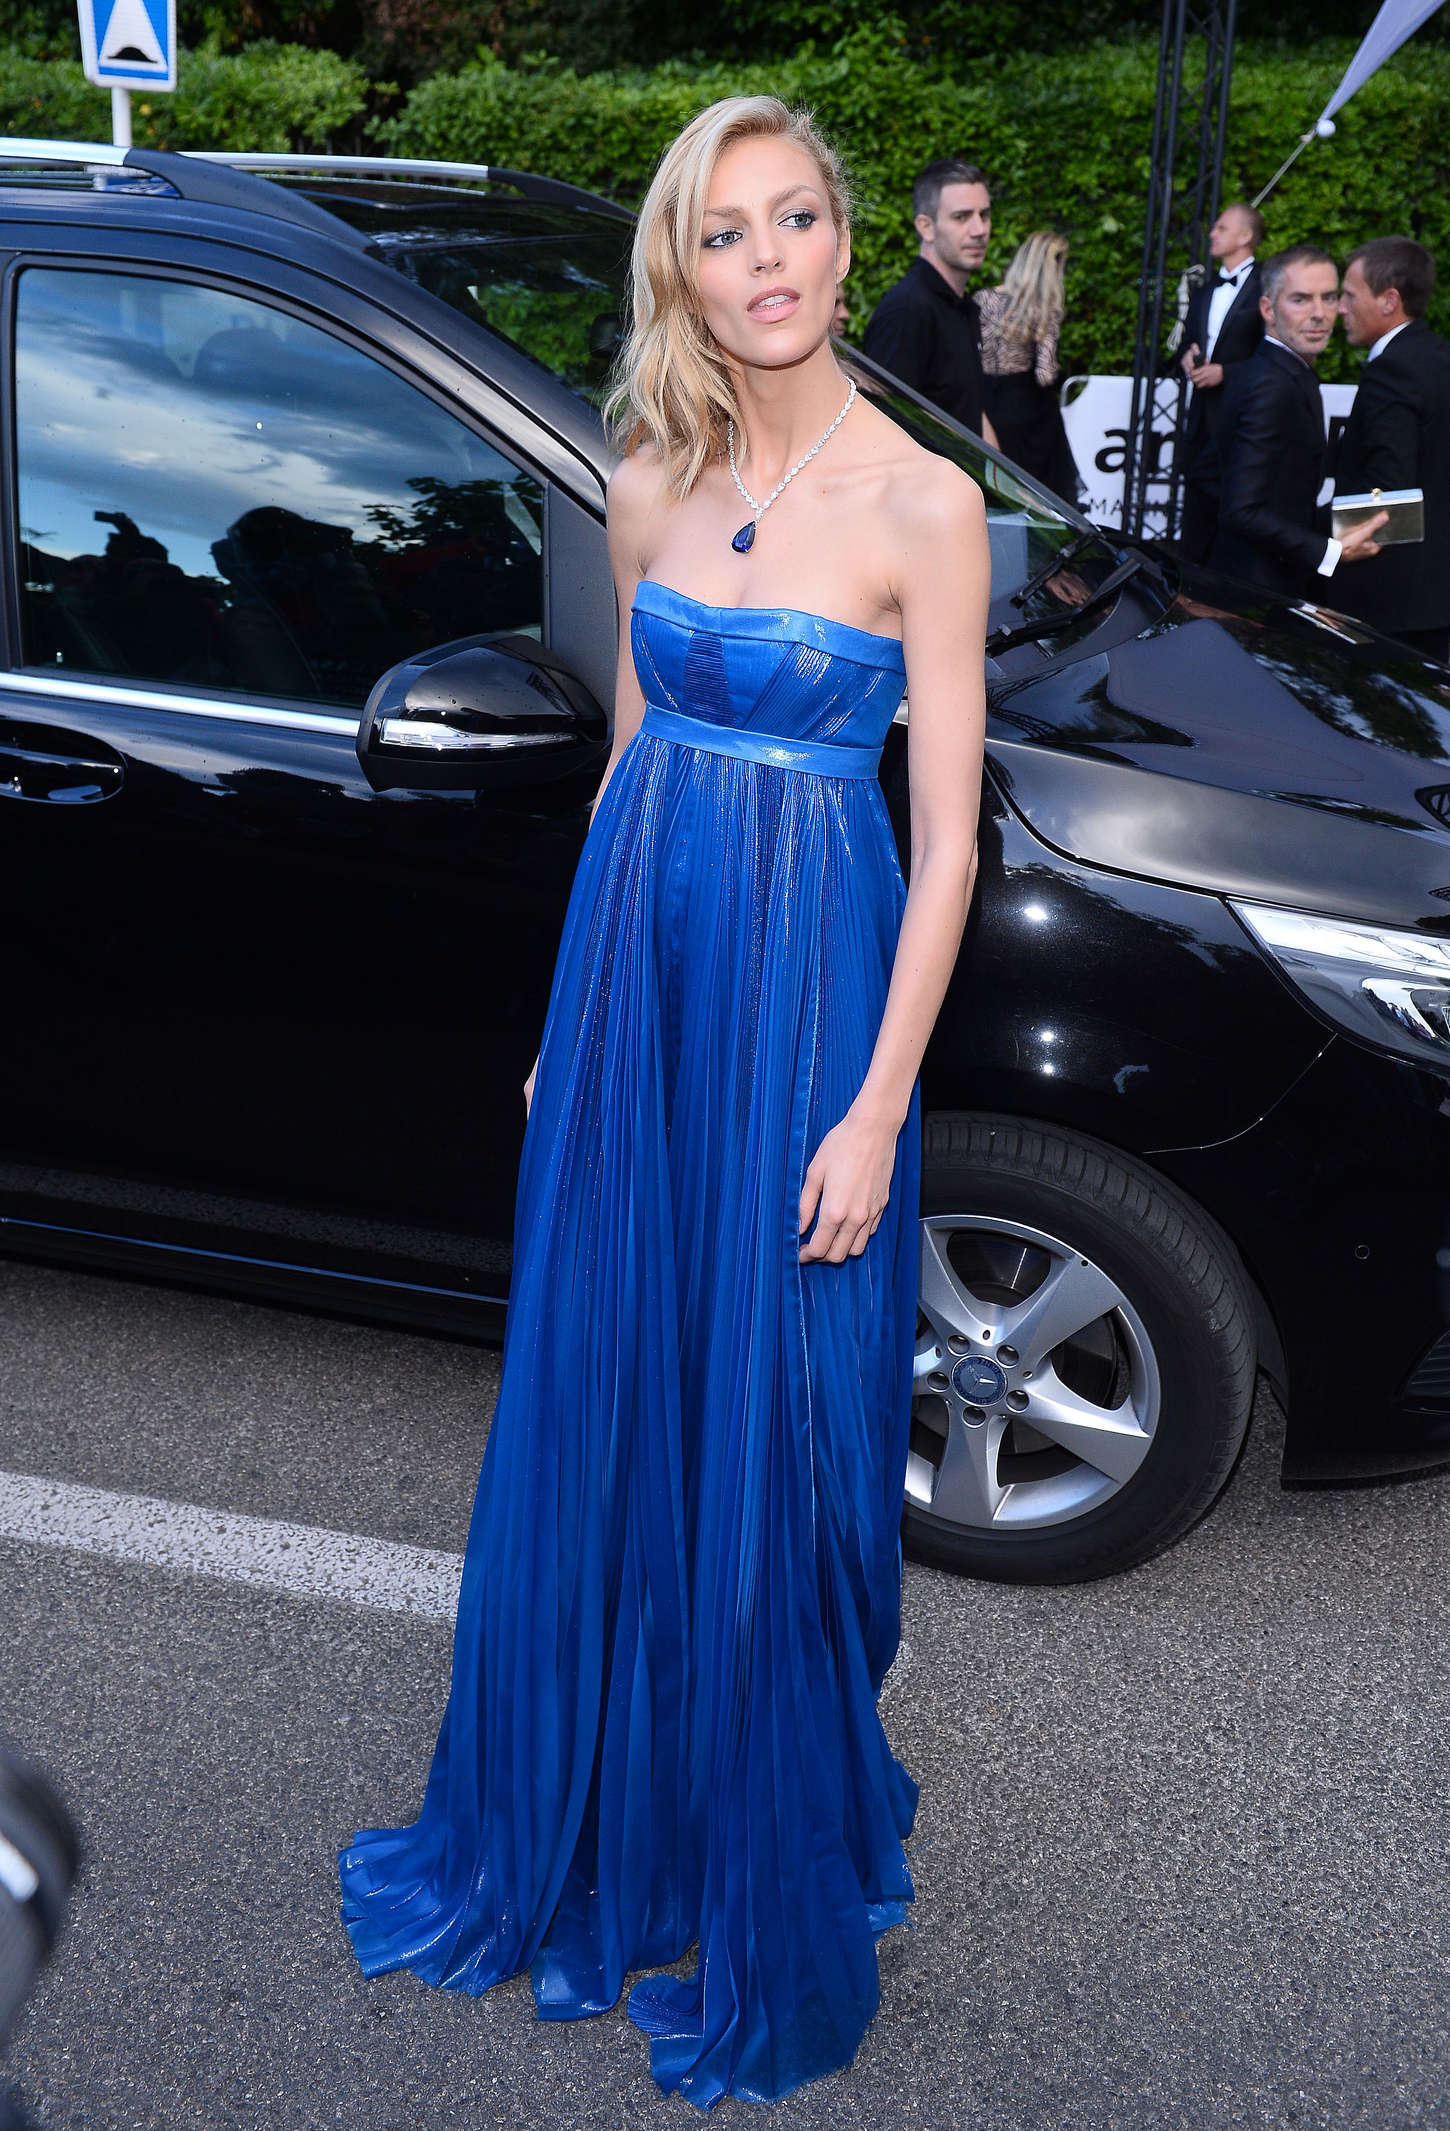 Anja Rubik amfARs Cinema Against AIDS Gala in Cap dAntibes